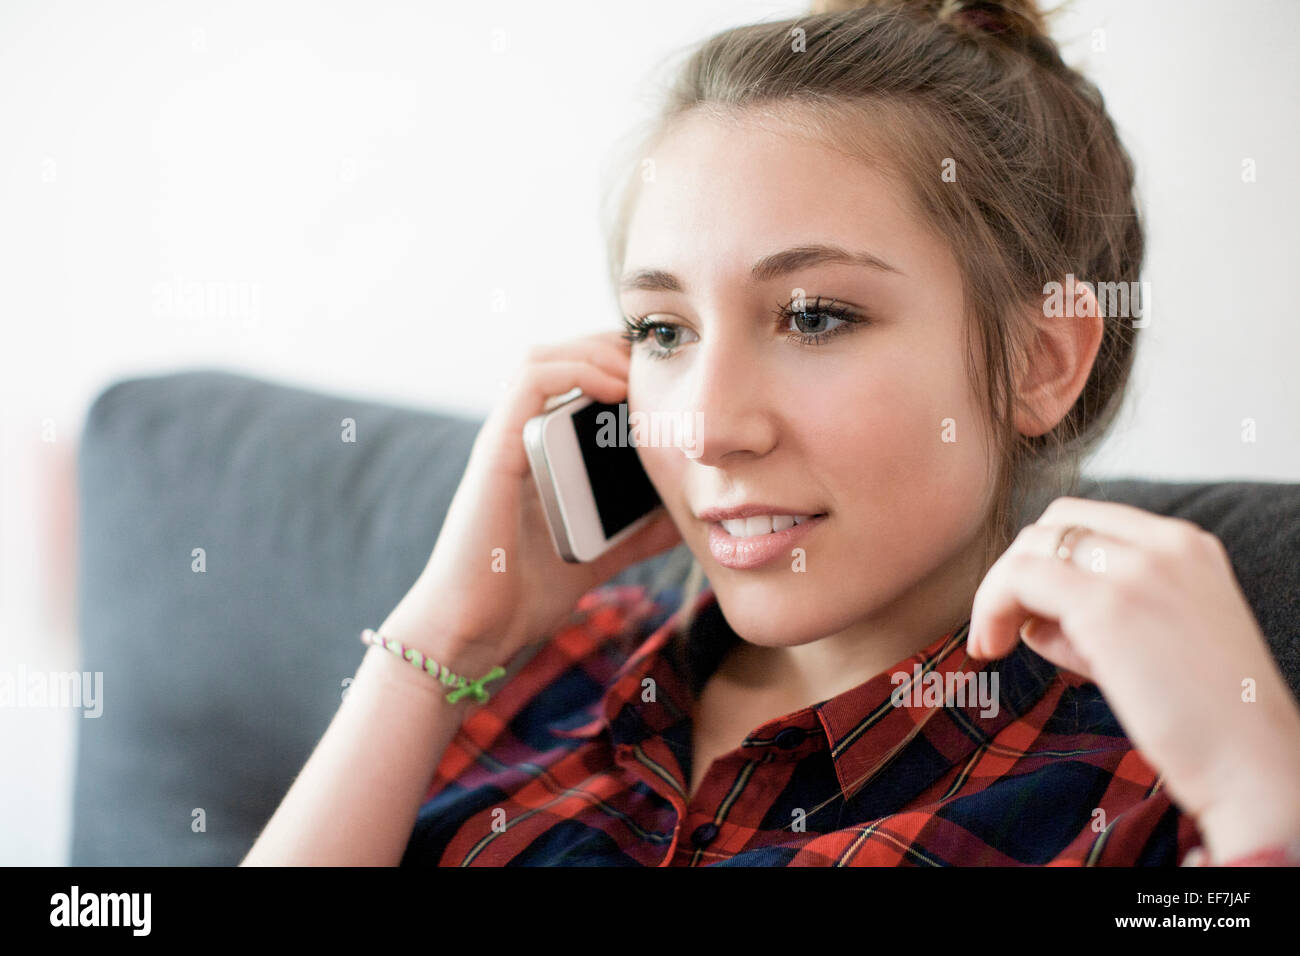 Girl on the phone Photo Stock